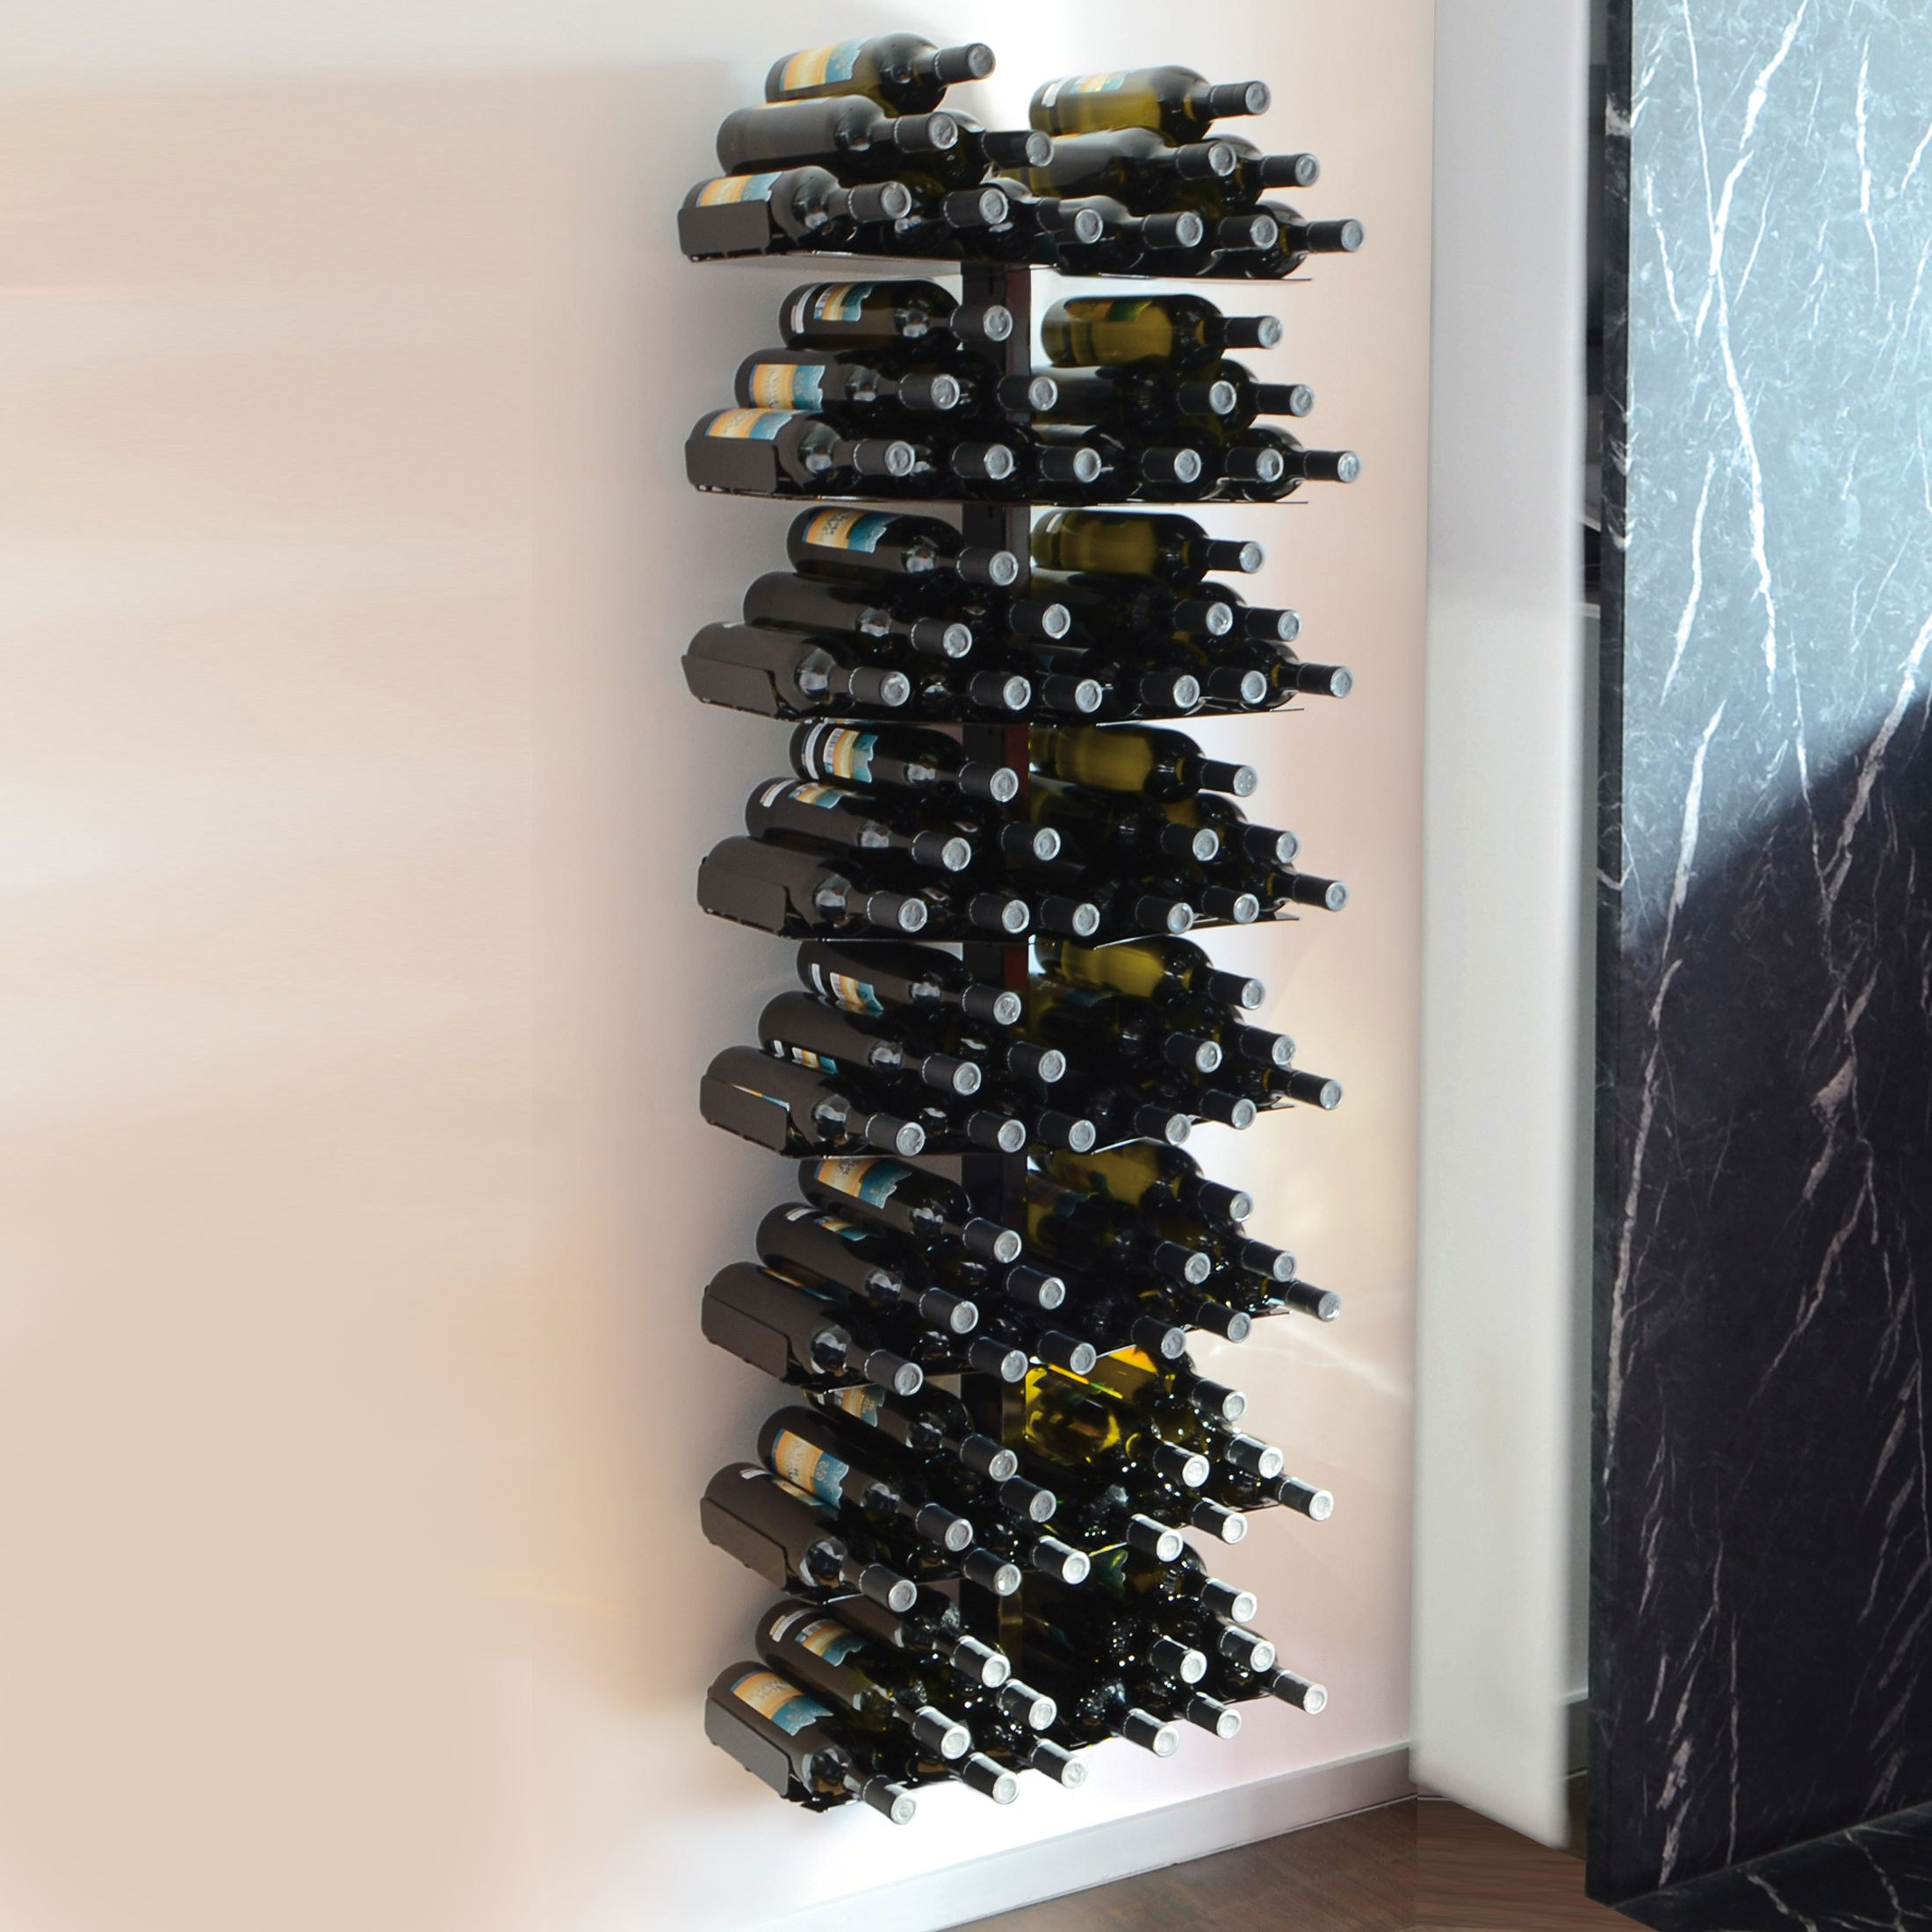 gr wein wandregal wine tree neu ebay. Black Bedroom Furniture Sets. Home Design Ideas